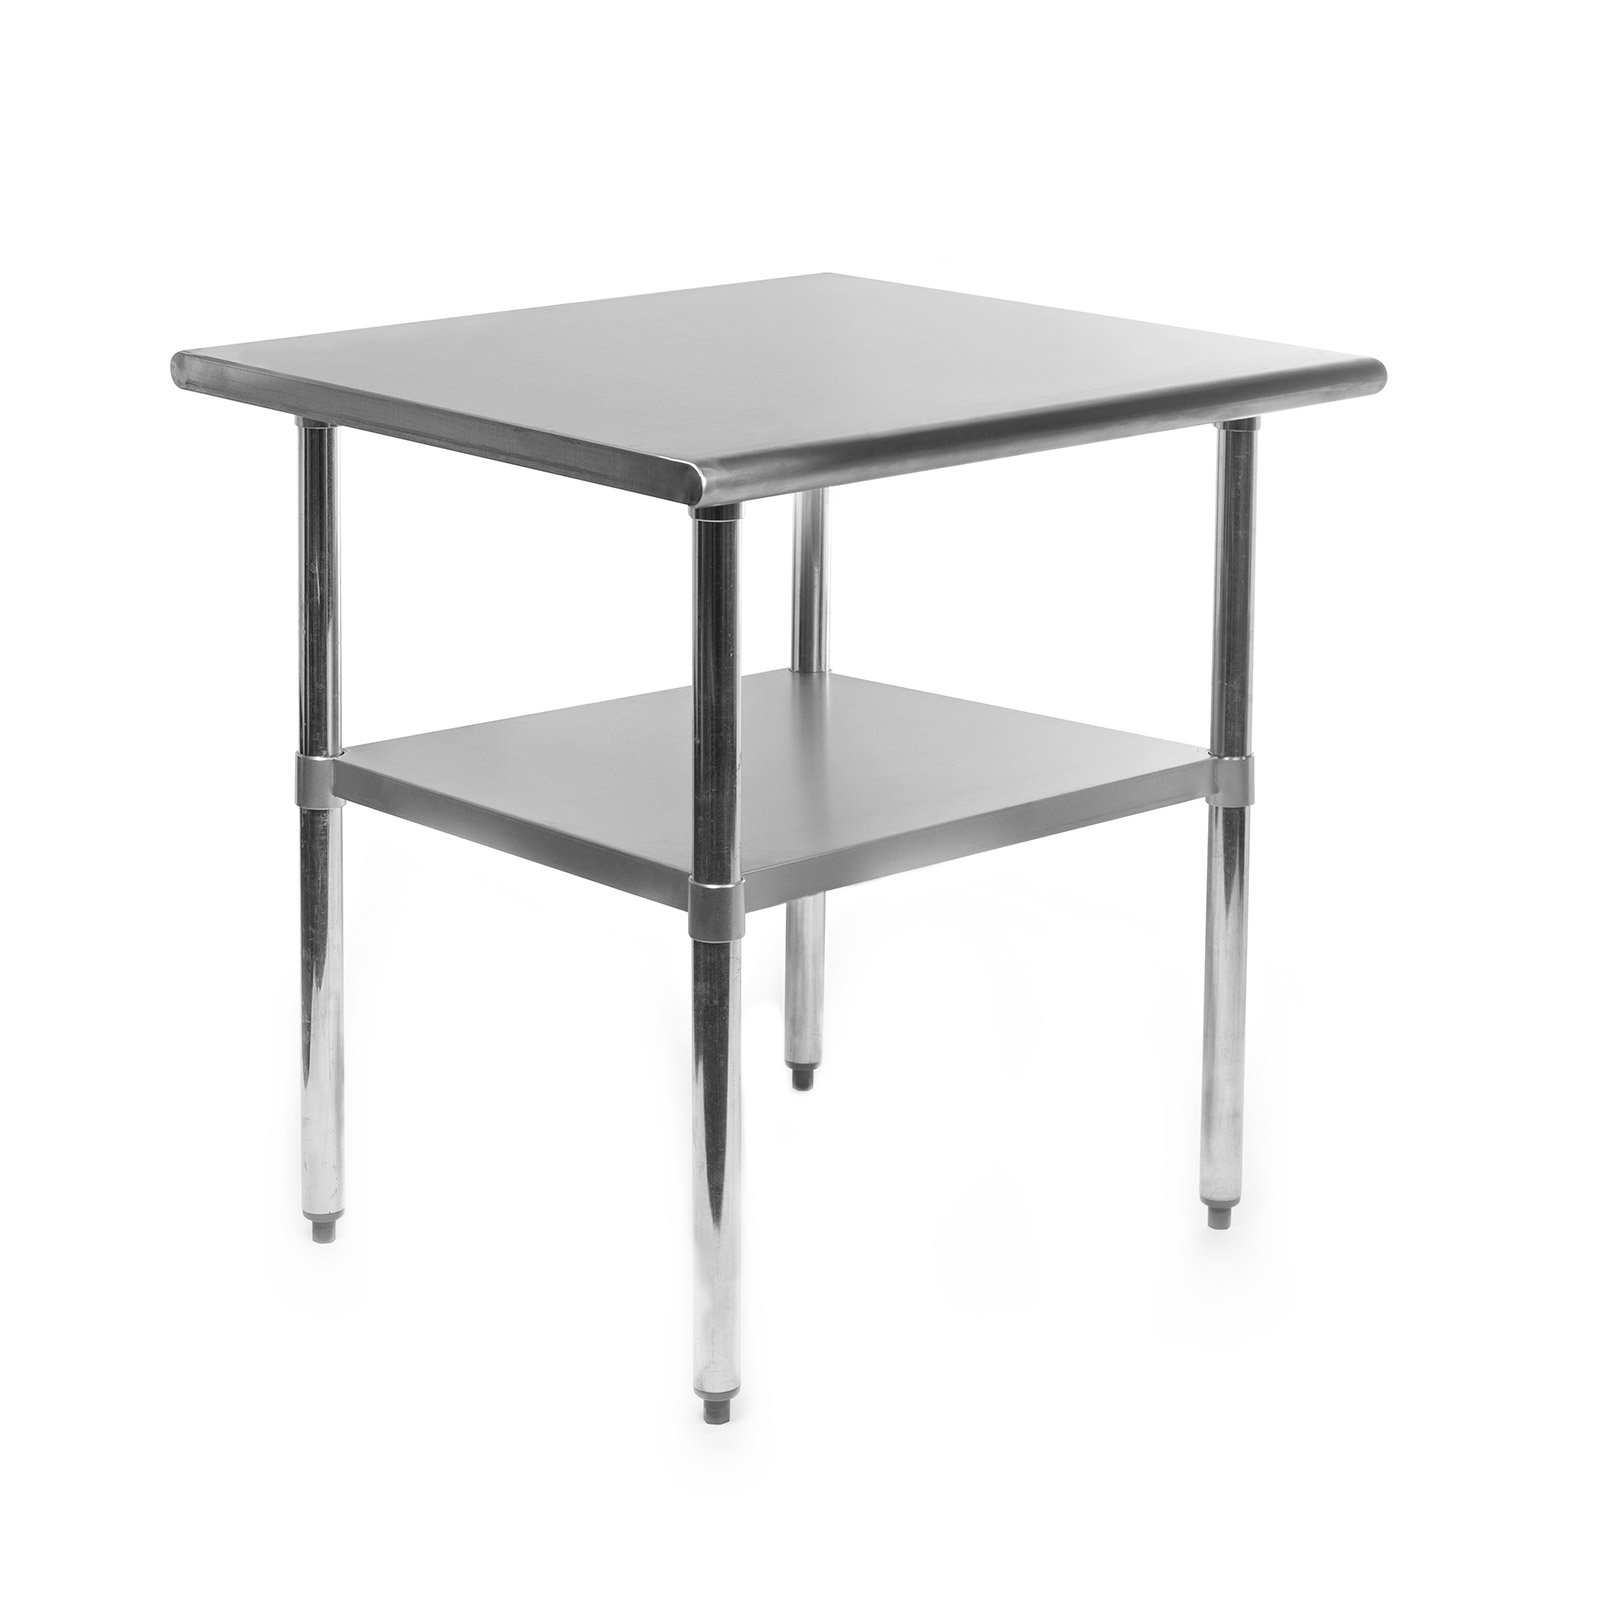 gridmann nsf stainless steel commercial kitchen prep & work table